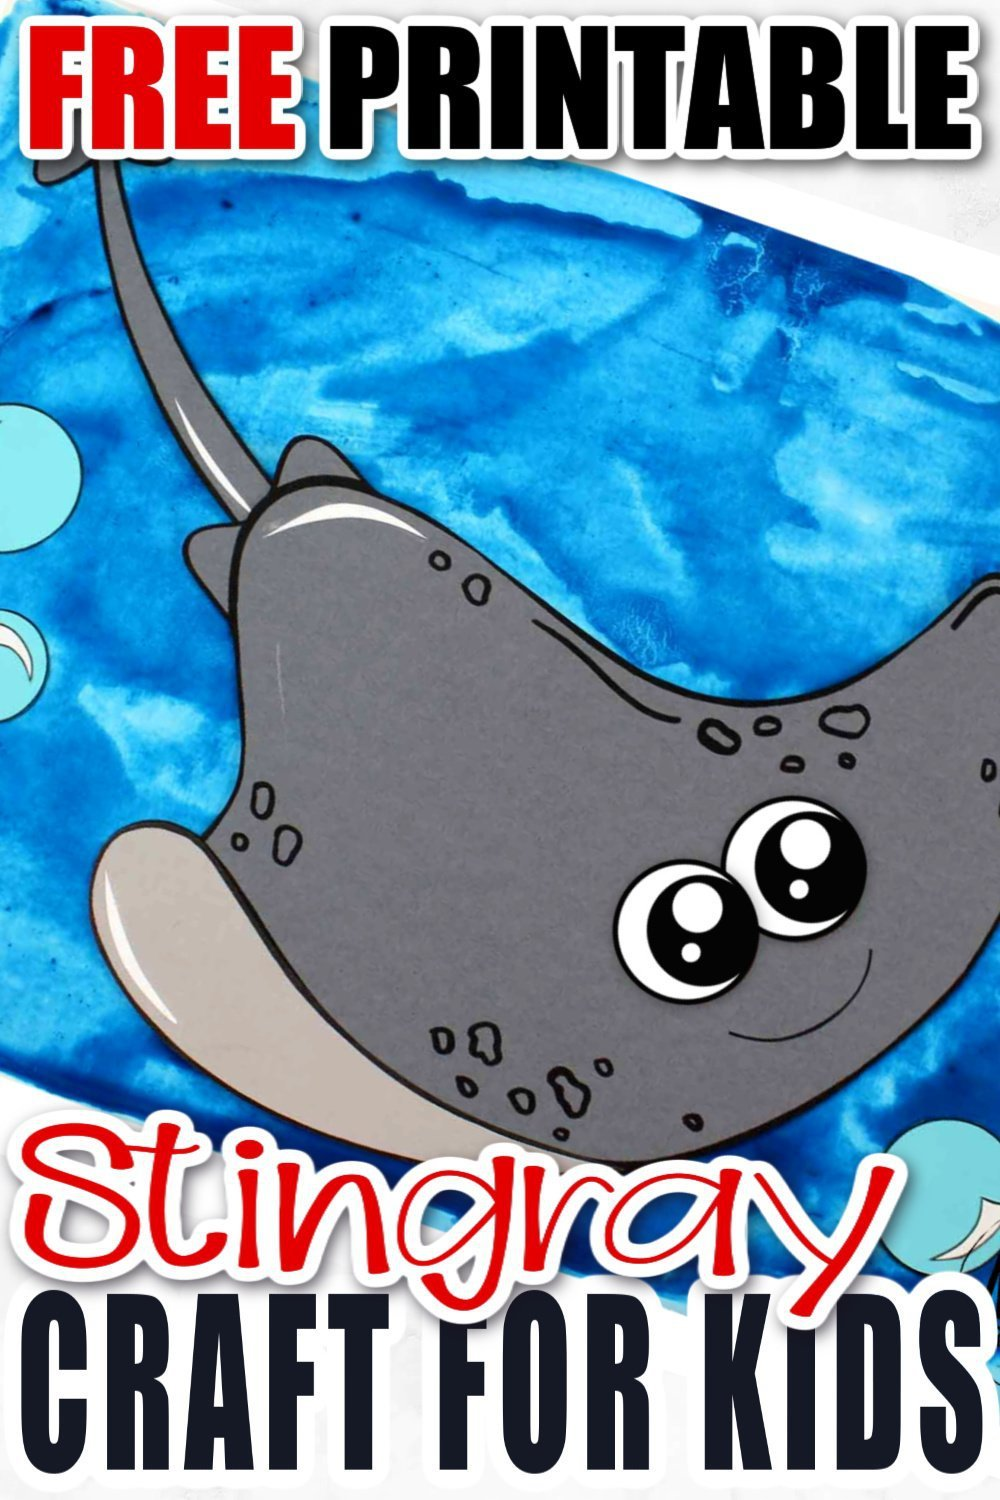 Looking for your next ocean theme or vbs craft? Use our free printable stingray template and make this simple stingray craft! Click and find the tutorial to make this fun kids craft. This cut and paste stingray craft is perfect for kids of all ages including preschoolers and toddlers #stingray #stingraycrafts #vbscrafts #oceananimals #oceananimalcrafts